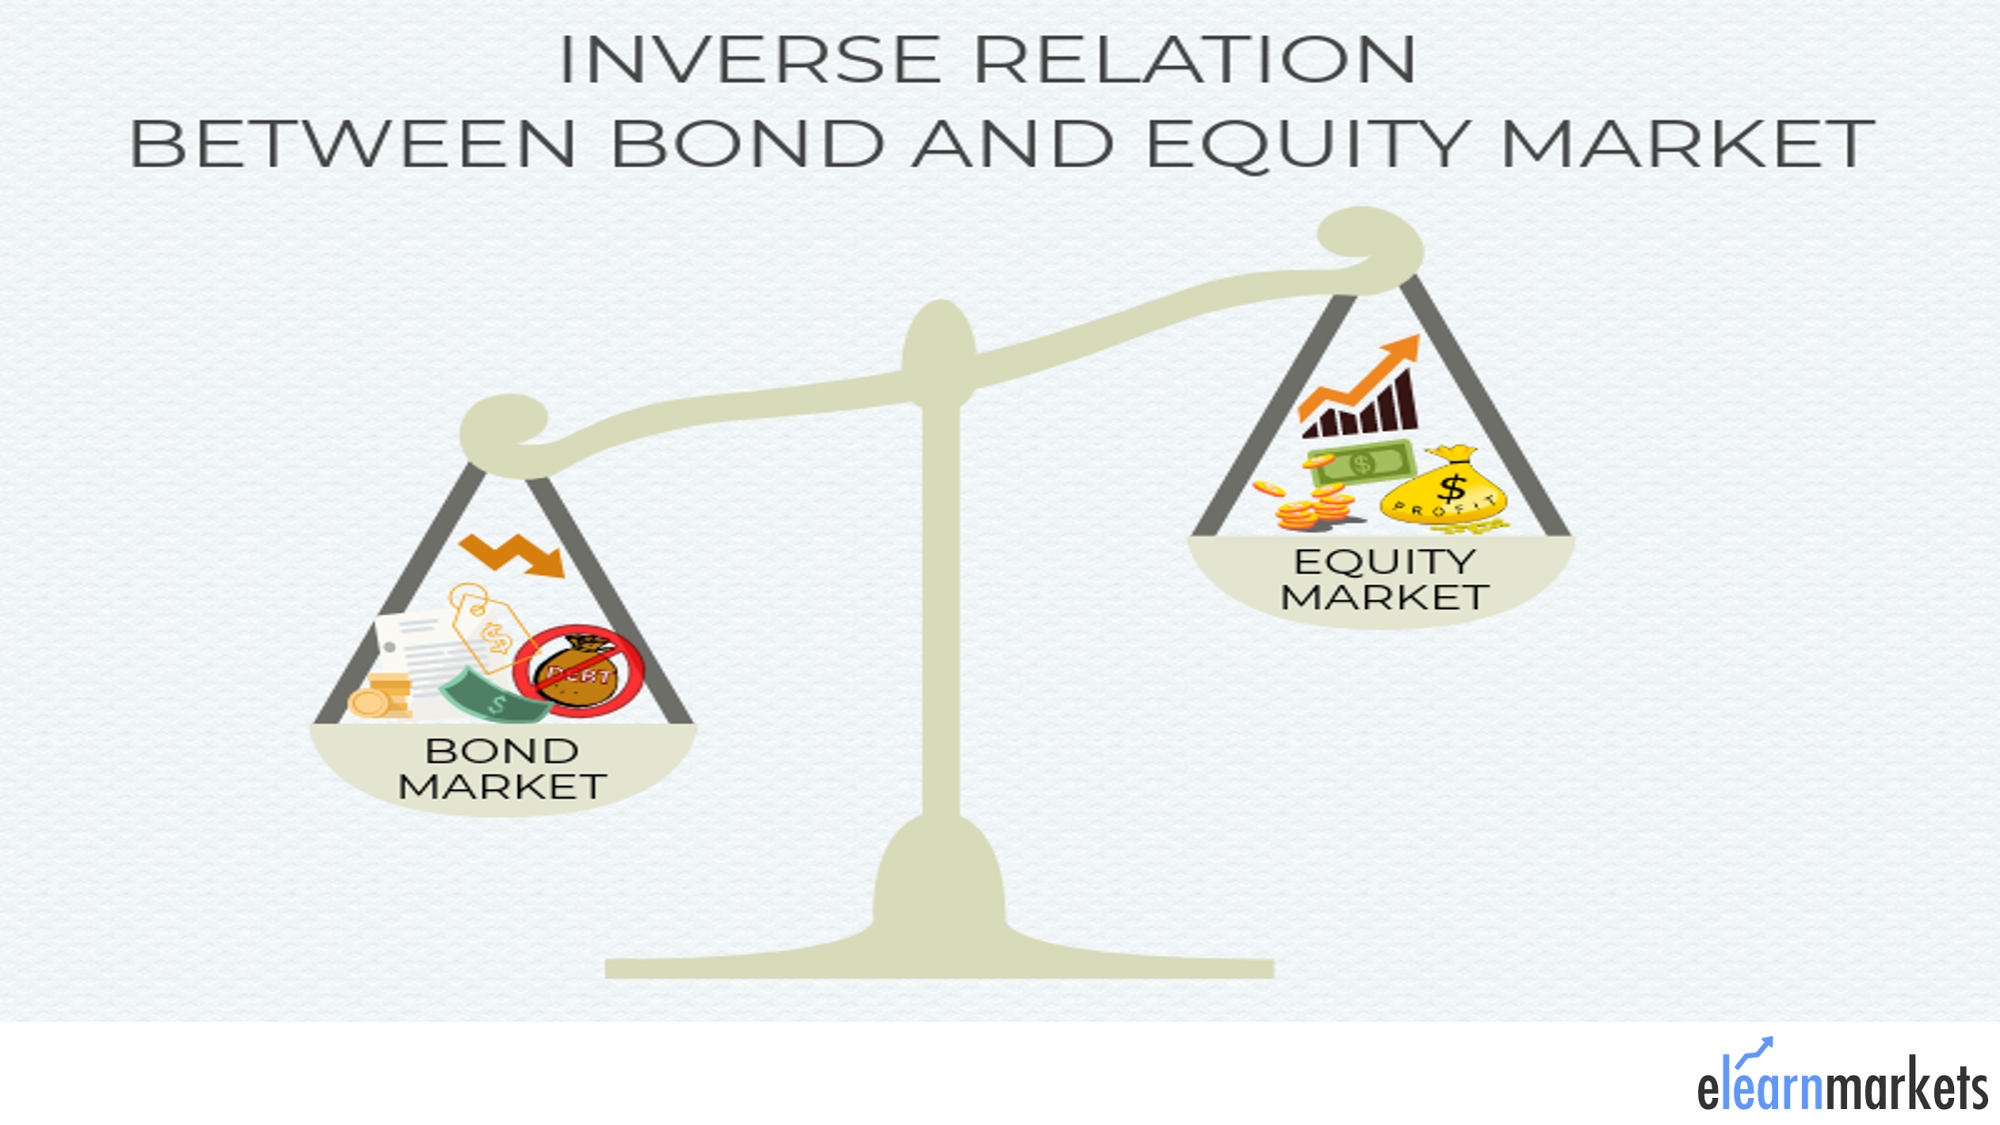 Bond and Equity